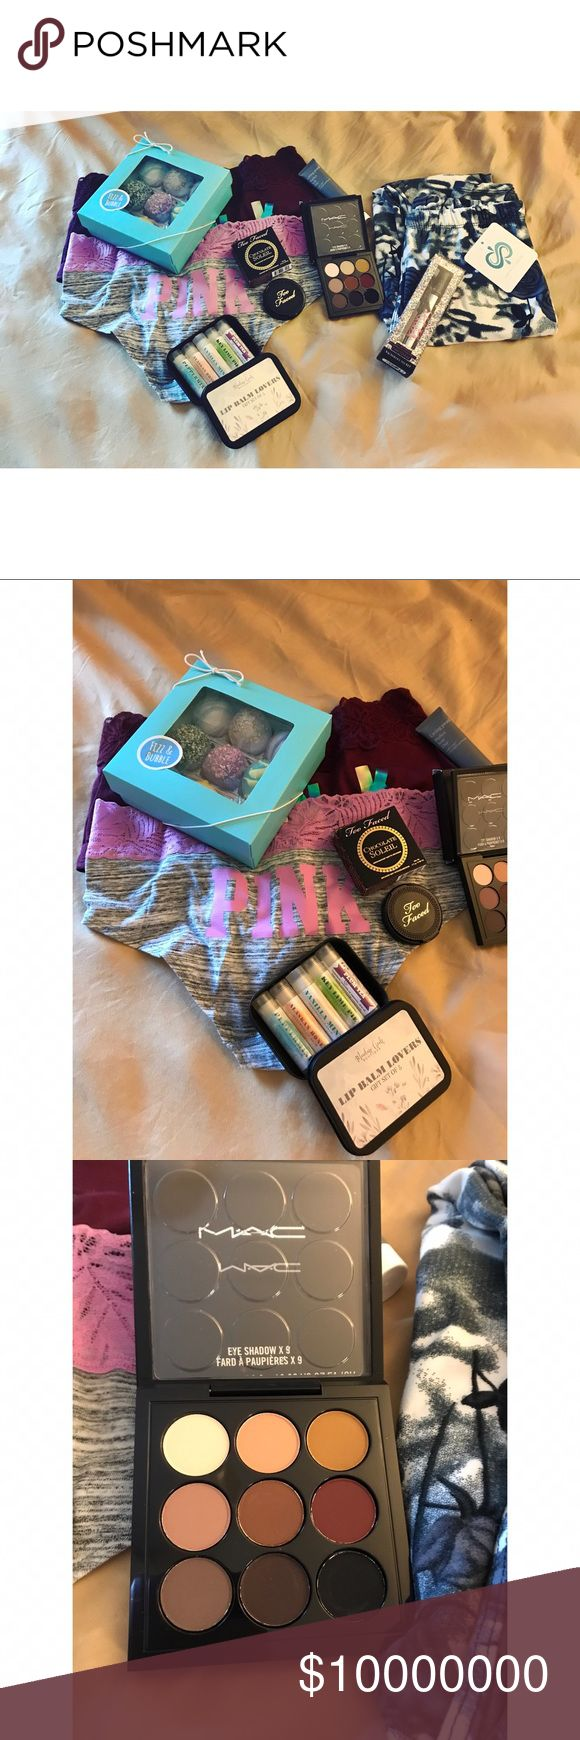 GIVE AWAY!!! Read details below 👇🏽 Another give away!!! How to enter!? MUST FOLLOW✅, SHARE THIS LISTING♻️, AND LIKE THIS LISTING❤️!!!! Don't forget to tag your friends! Winner receives 2 Large VS Undies, Fizz & Bath Truffle Bundle, Meadow Creek Lip Balm Set of 5, Too Faced Chocolate Soleil, Mac Semi Sweet Palette, Living Proof hair Day, VS Roller Ball, and 1 Floral Leggings from my boutique! Winner will be chosen by random generator and announced by May 14! Must enter by the 13th. I check…